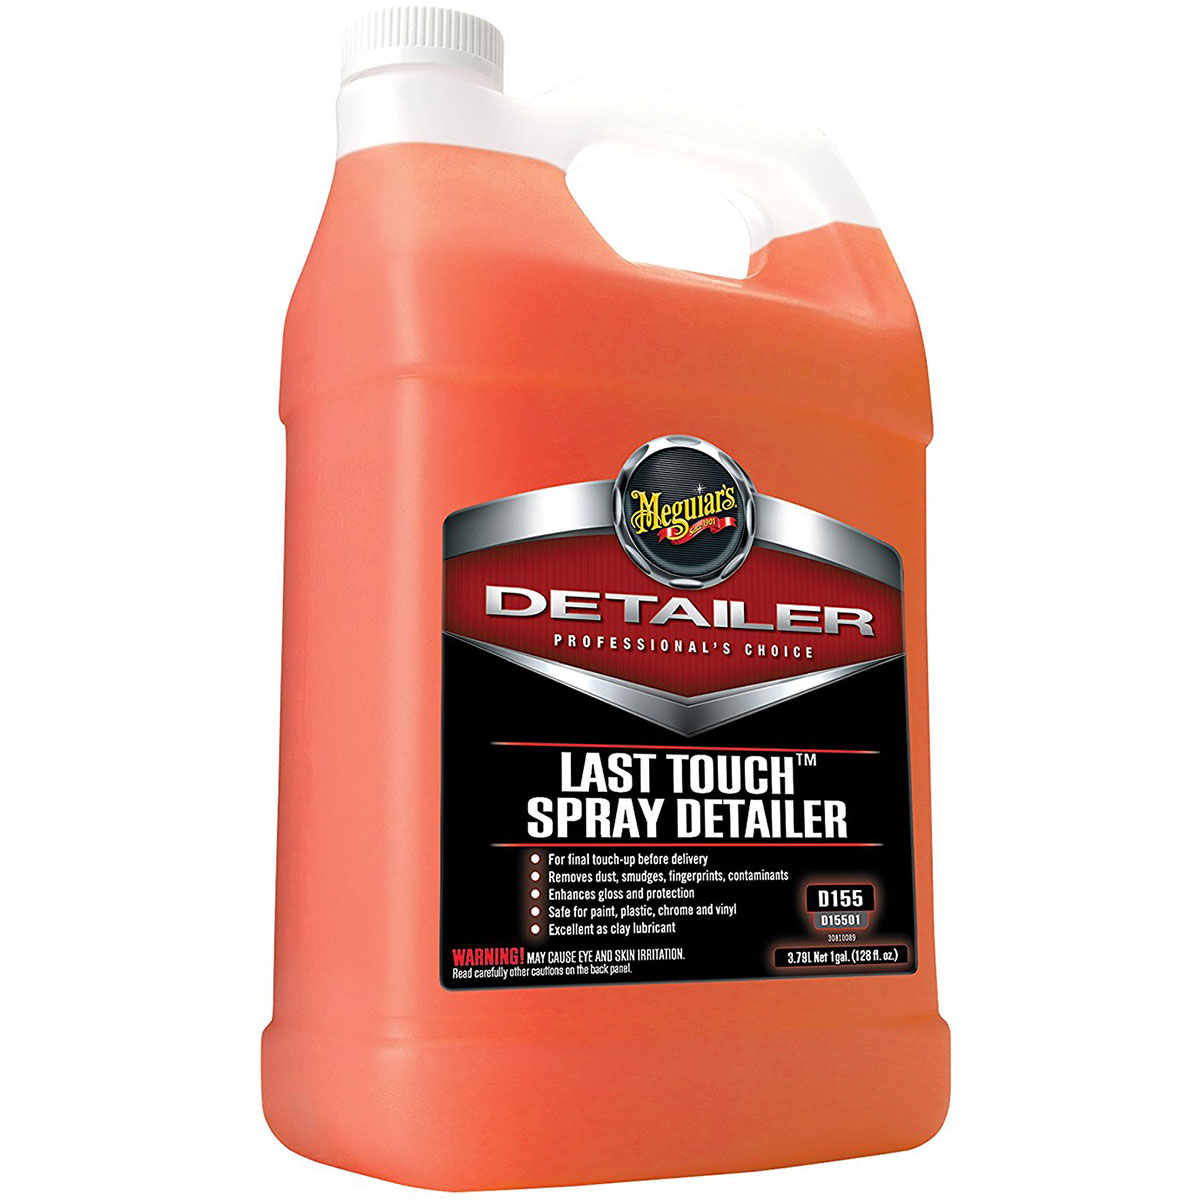 Last Touch Spray Detailer Meguiars